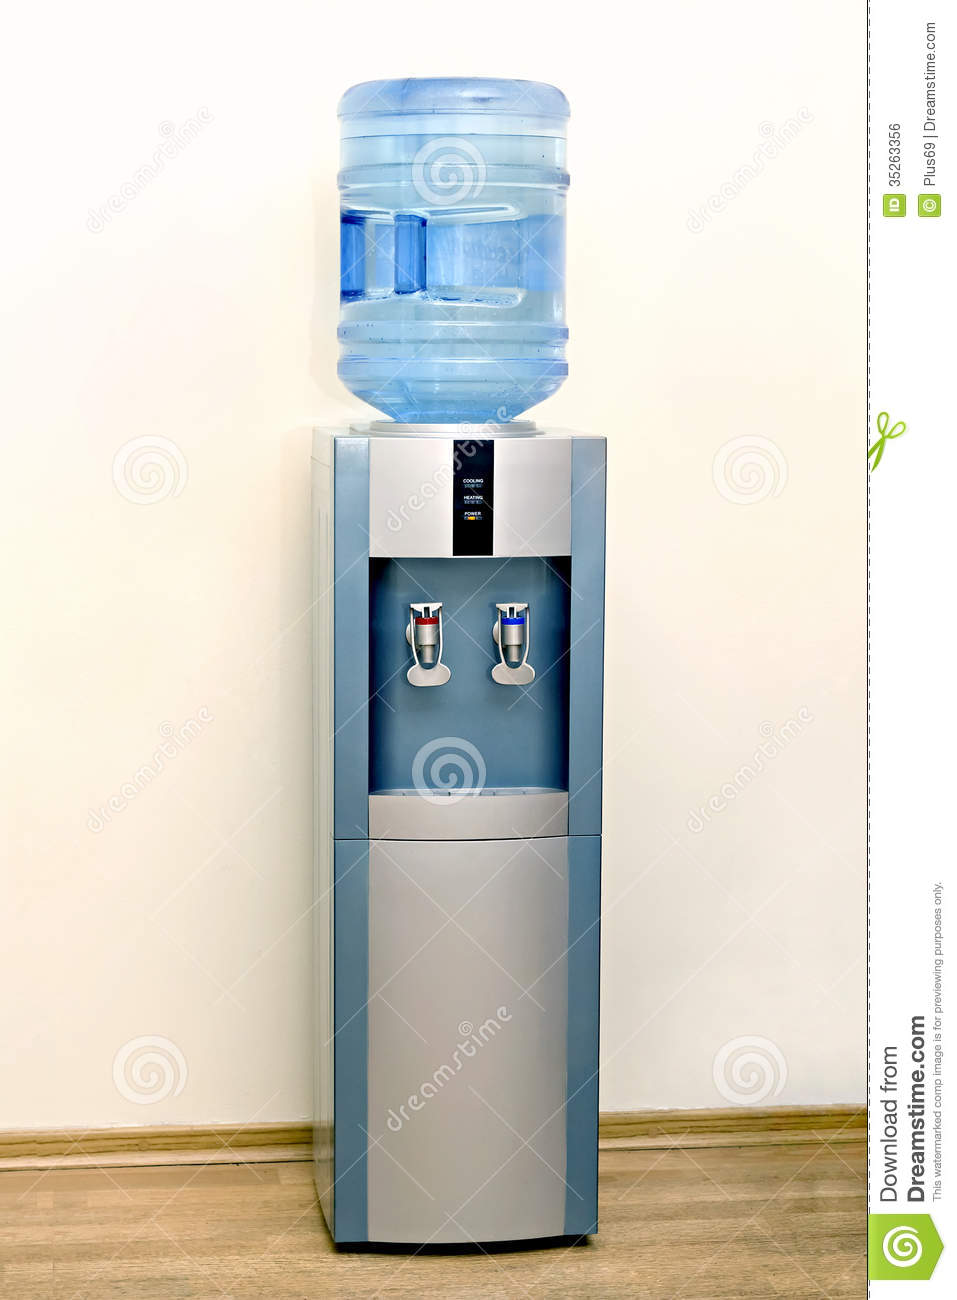 electric-water-cooler-against-background